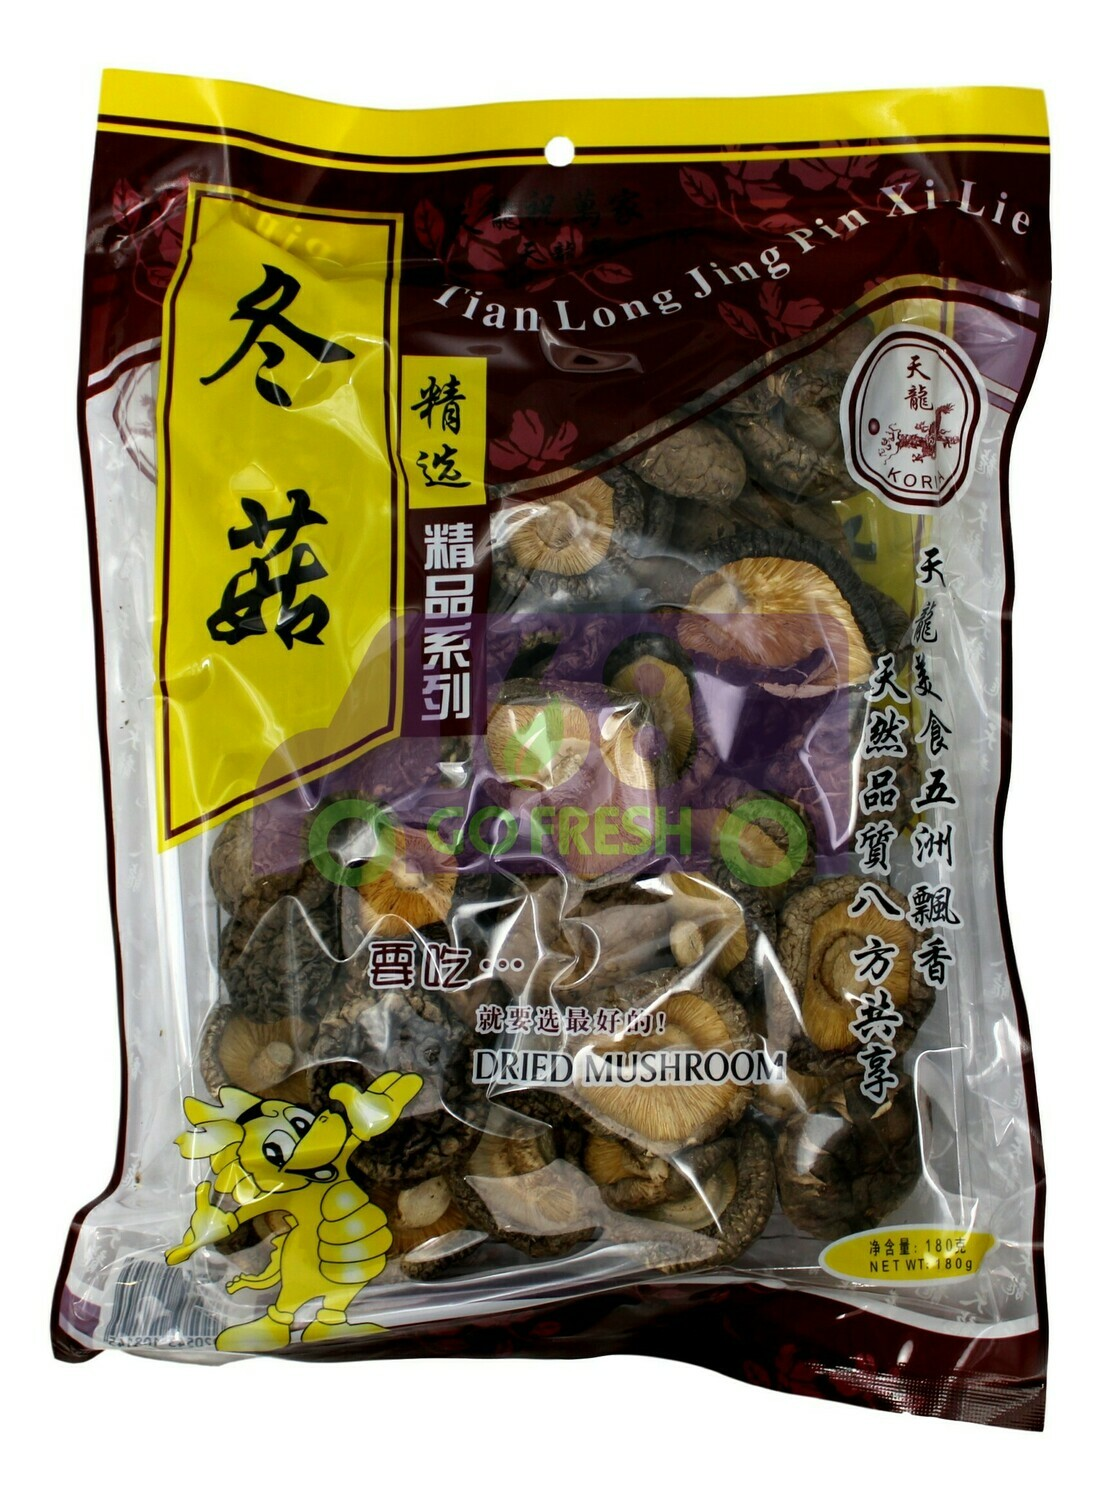 EAST DRAGON DRIED MUSHROOM 东龙 冬菇(180G)